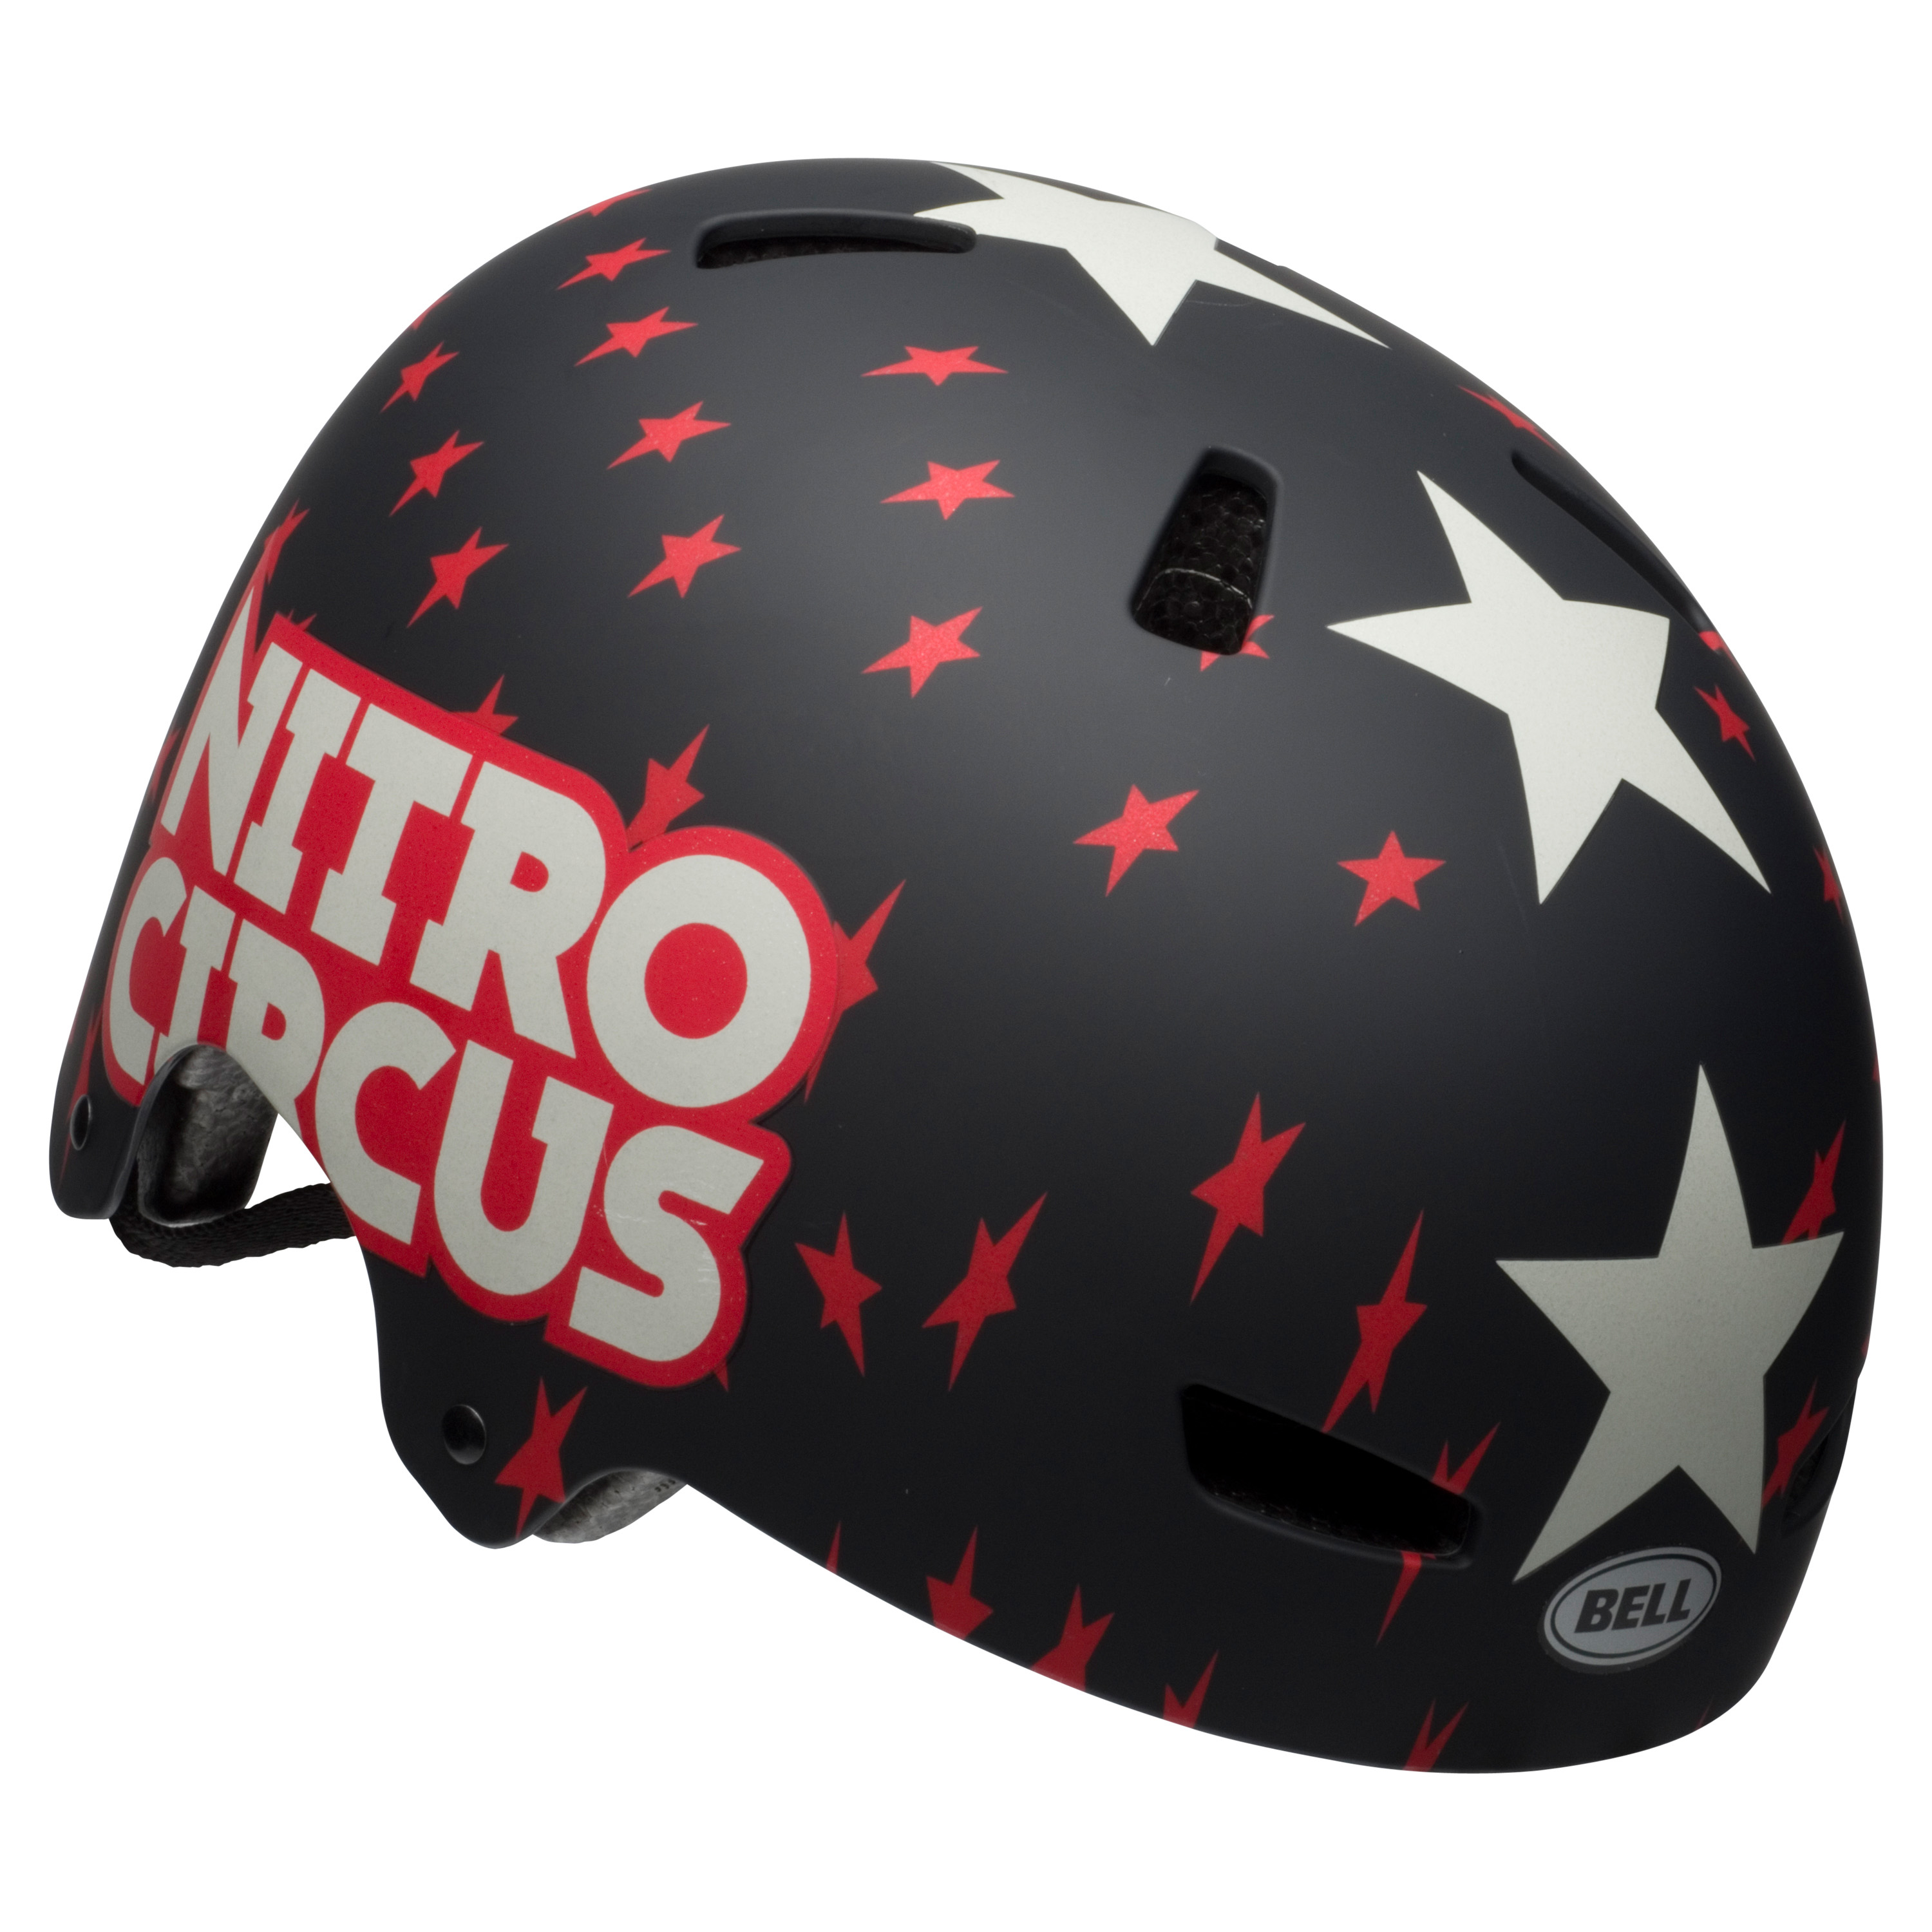 Bell Sports Nitro Circus Ollie Youth Multisport Helmet, Black/Red Stars